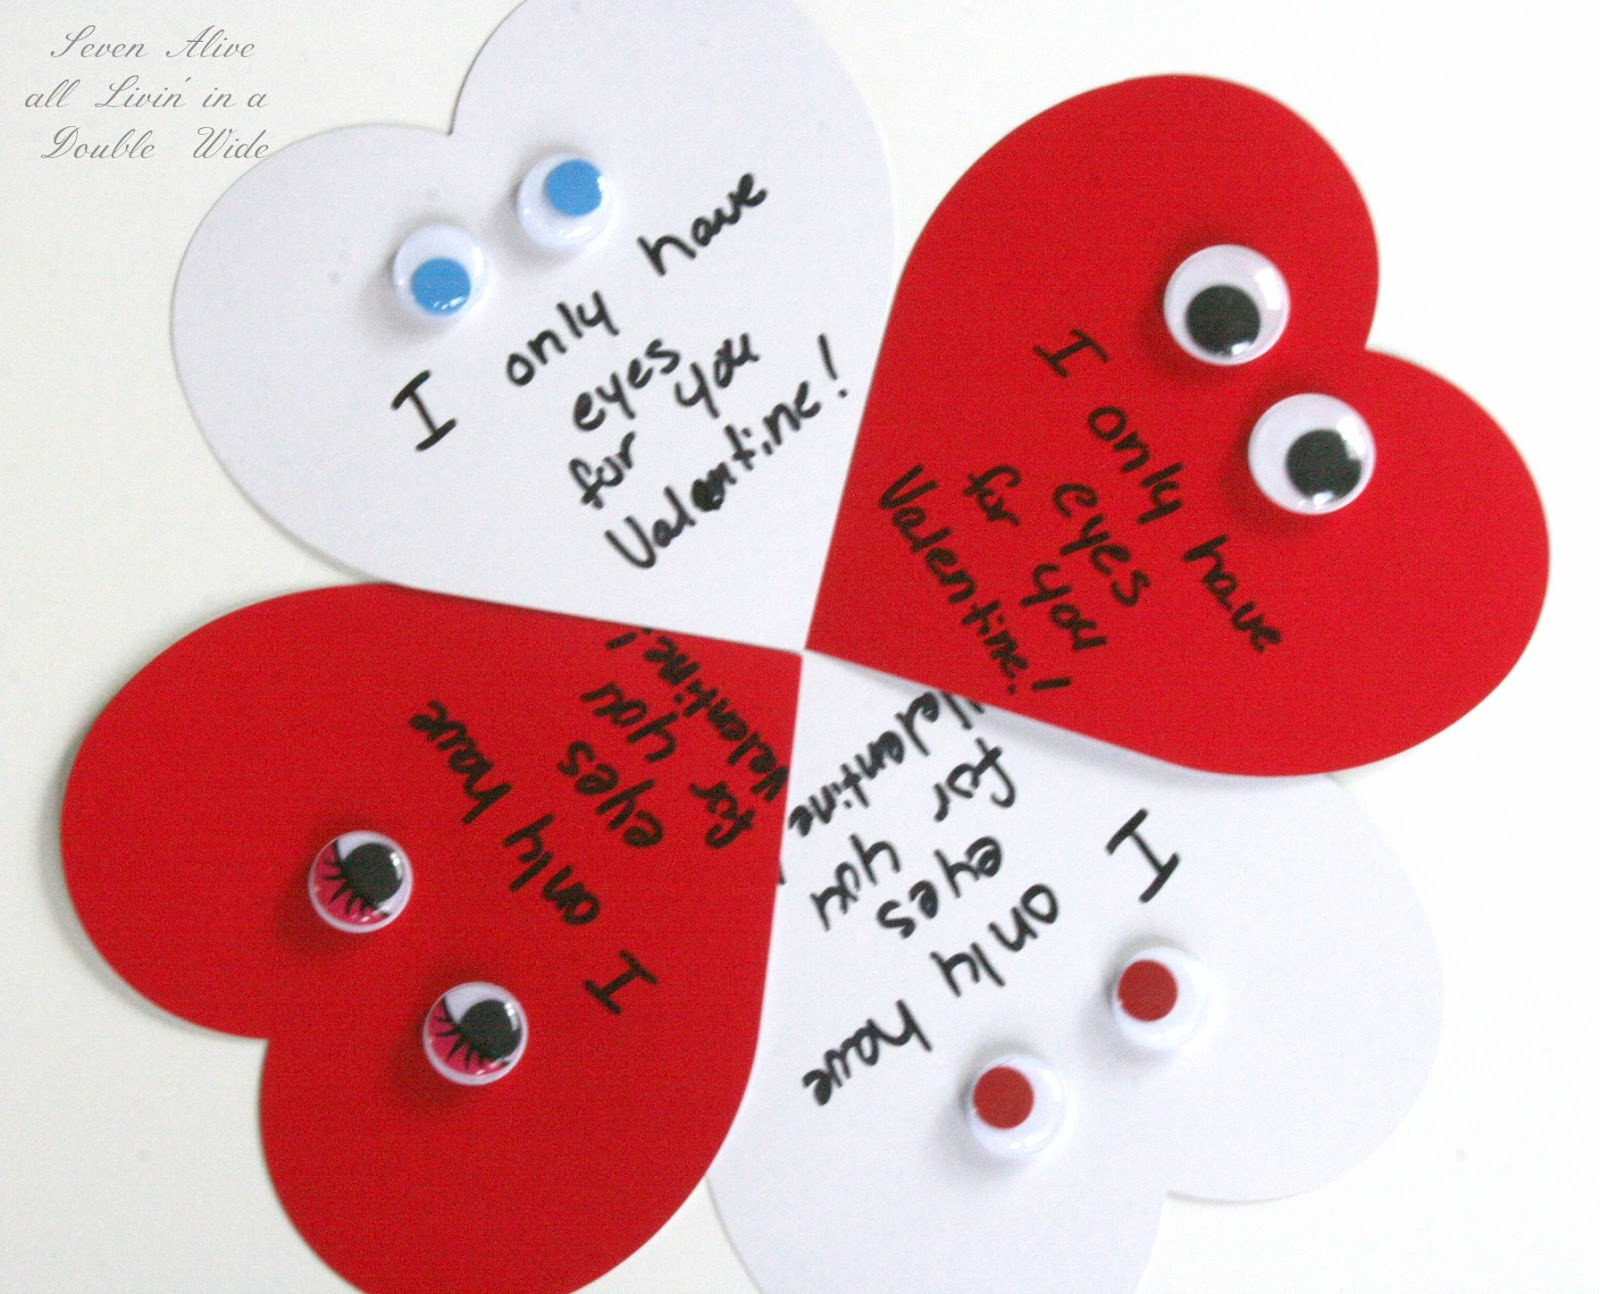 Cute Valentine Card Message Ideas Cute romantic valentines day